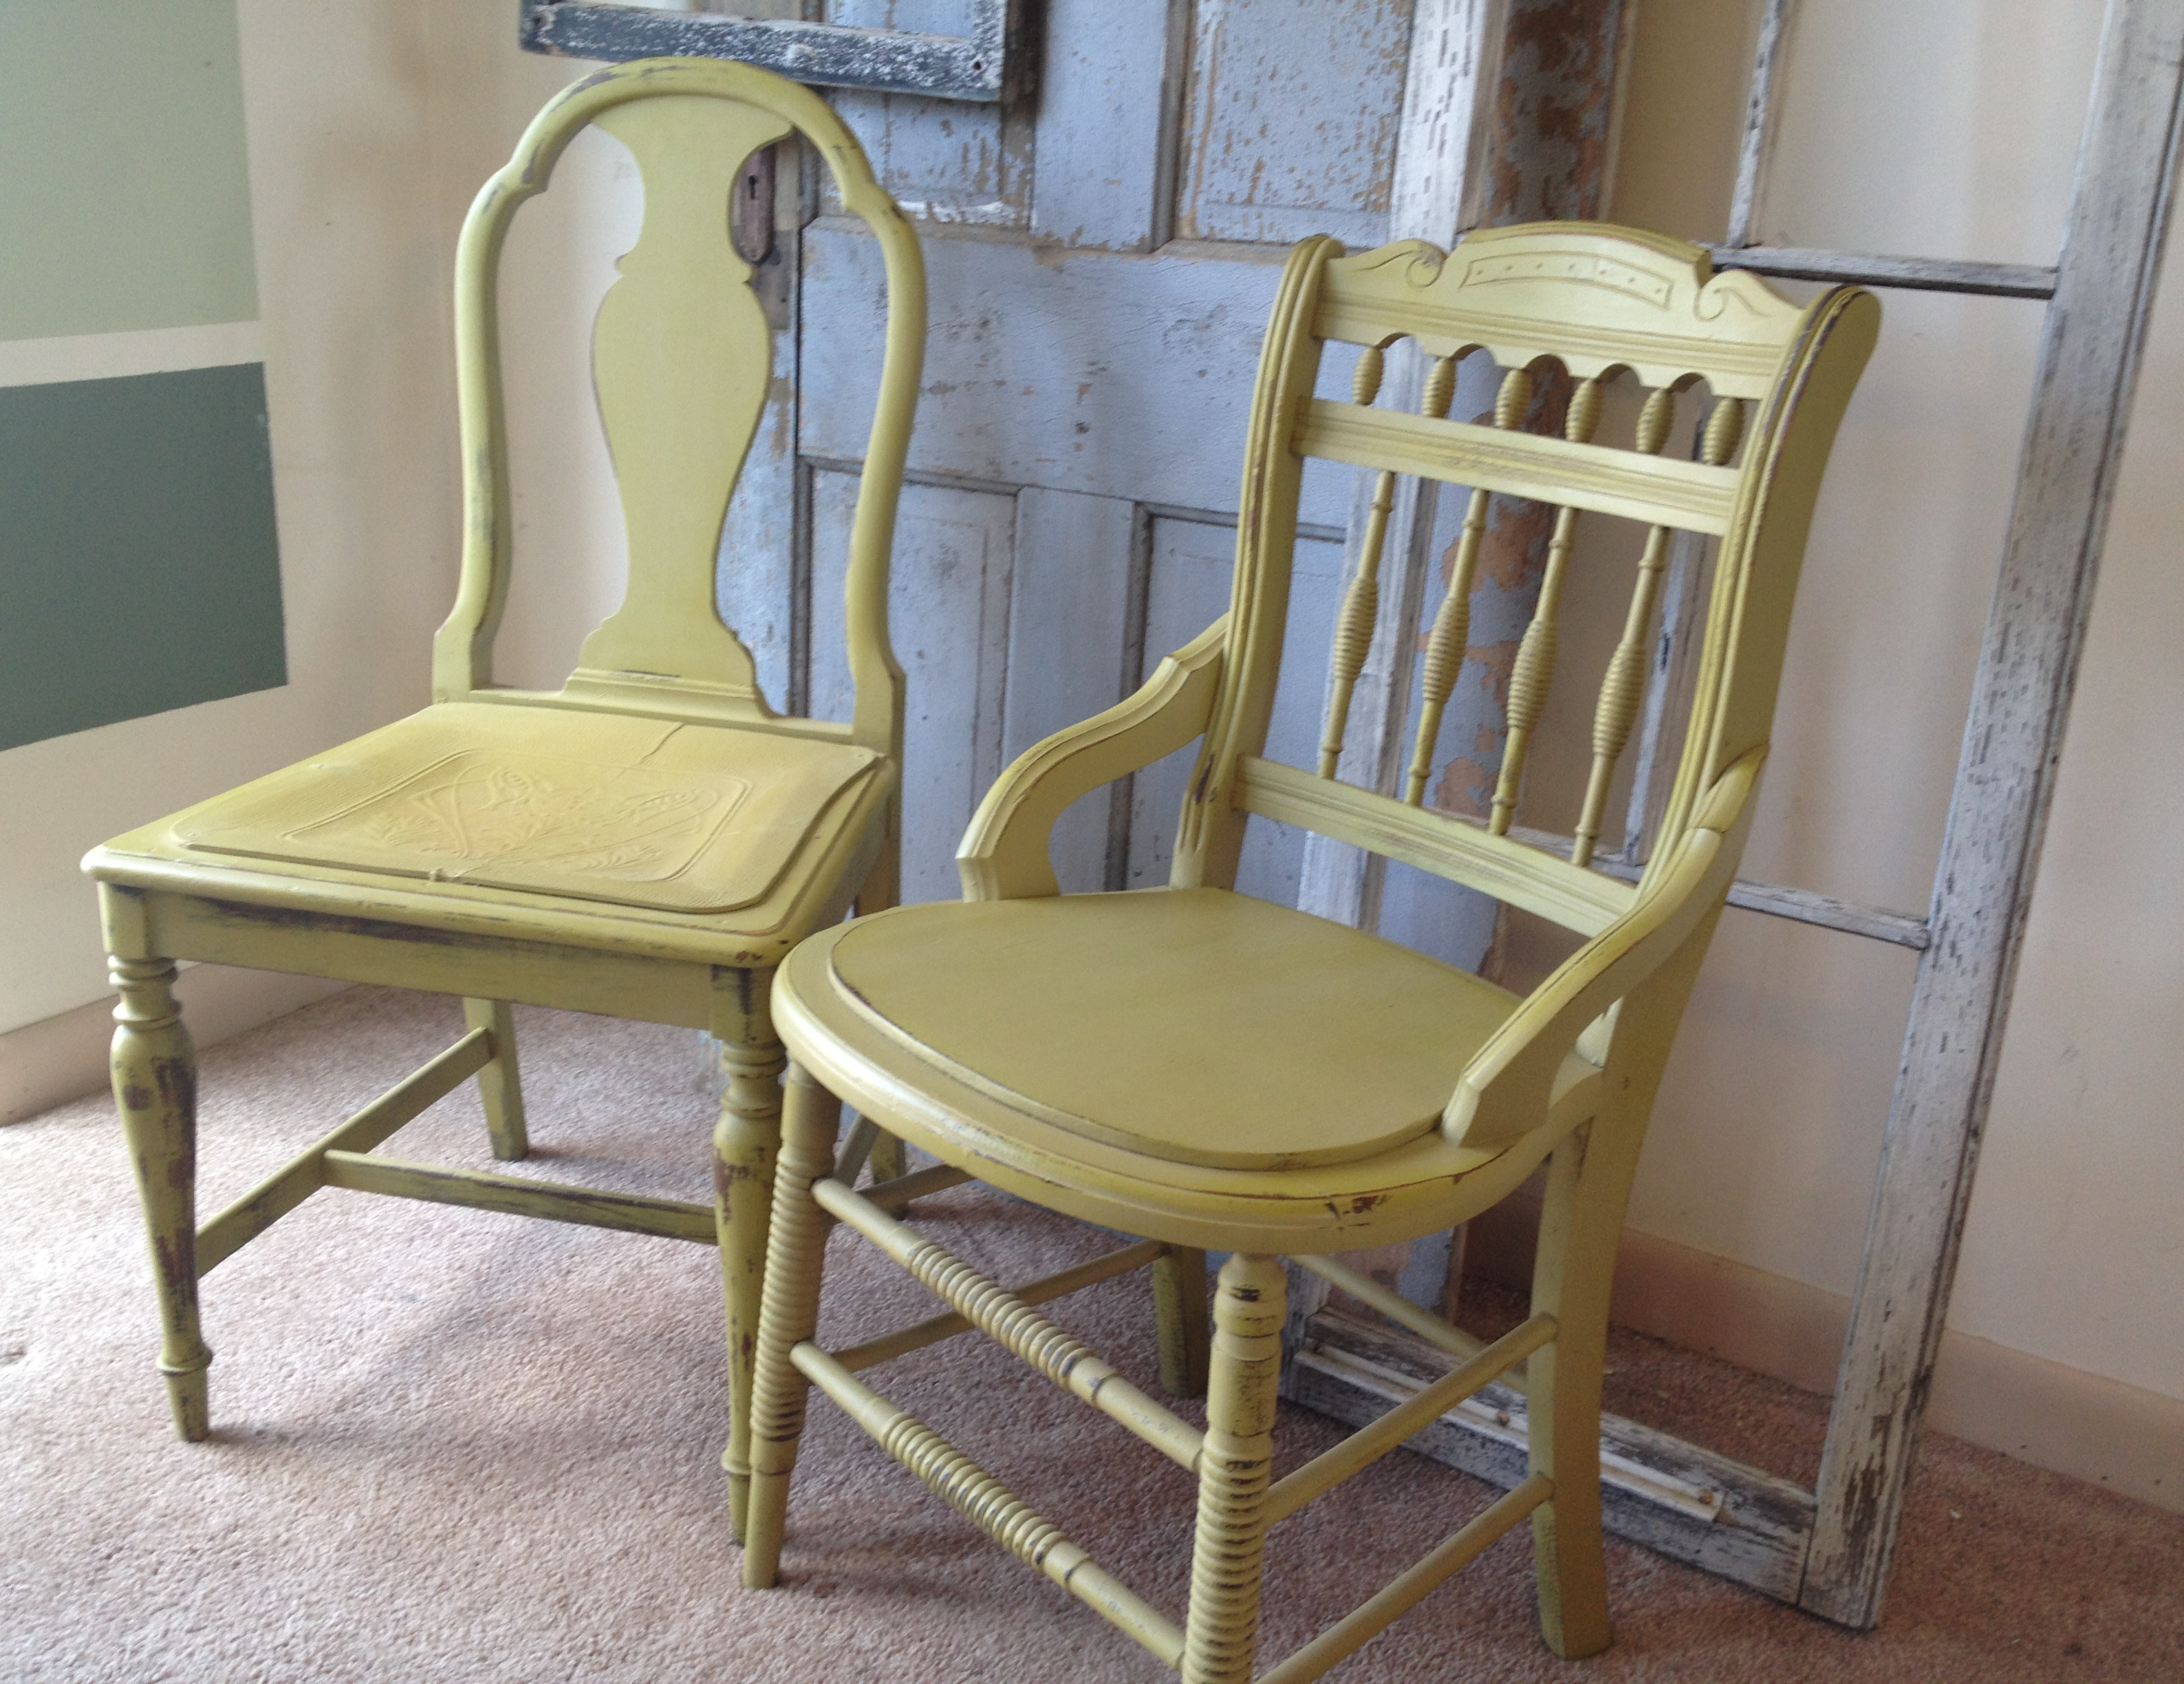 Kitchen chairs vintage